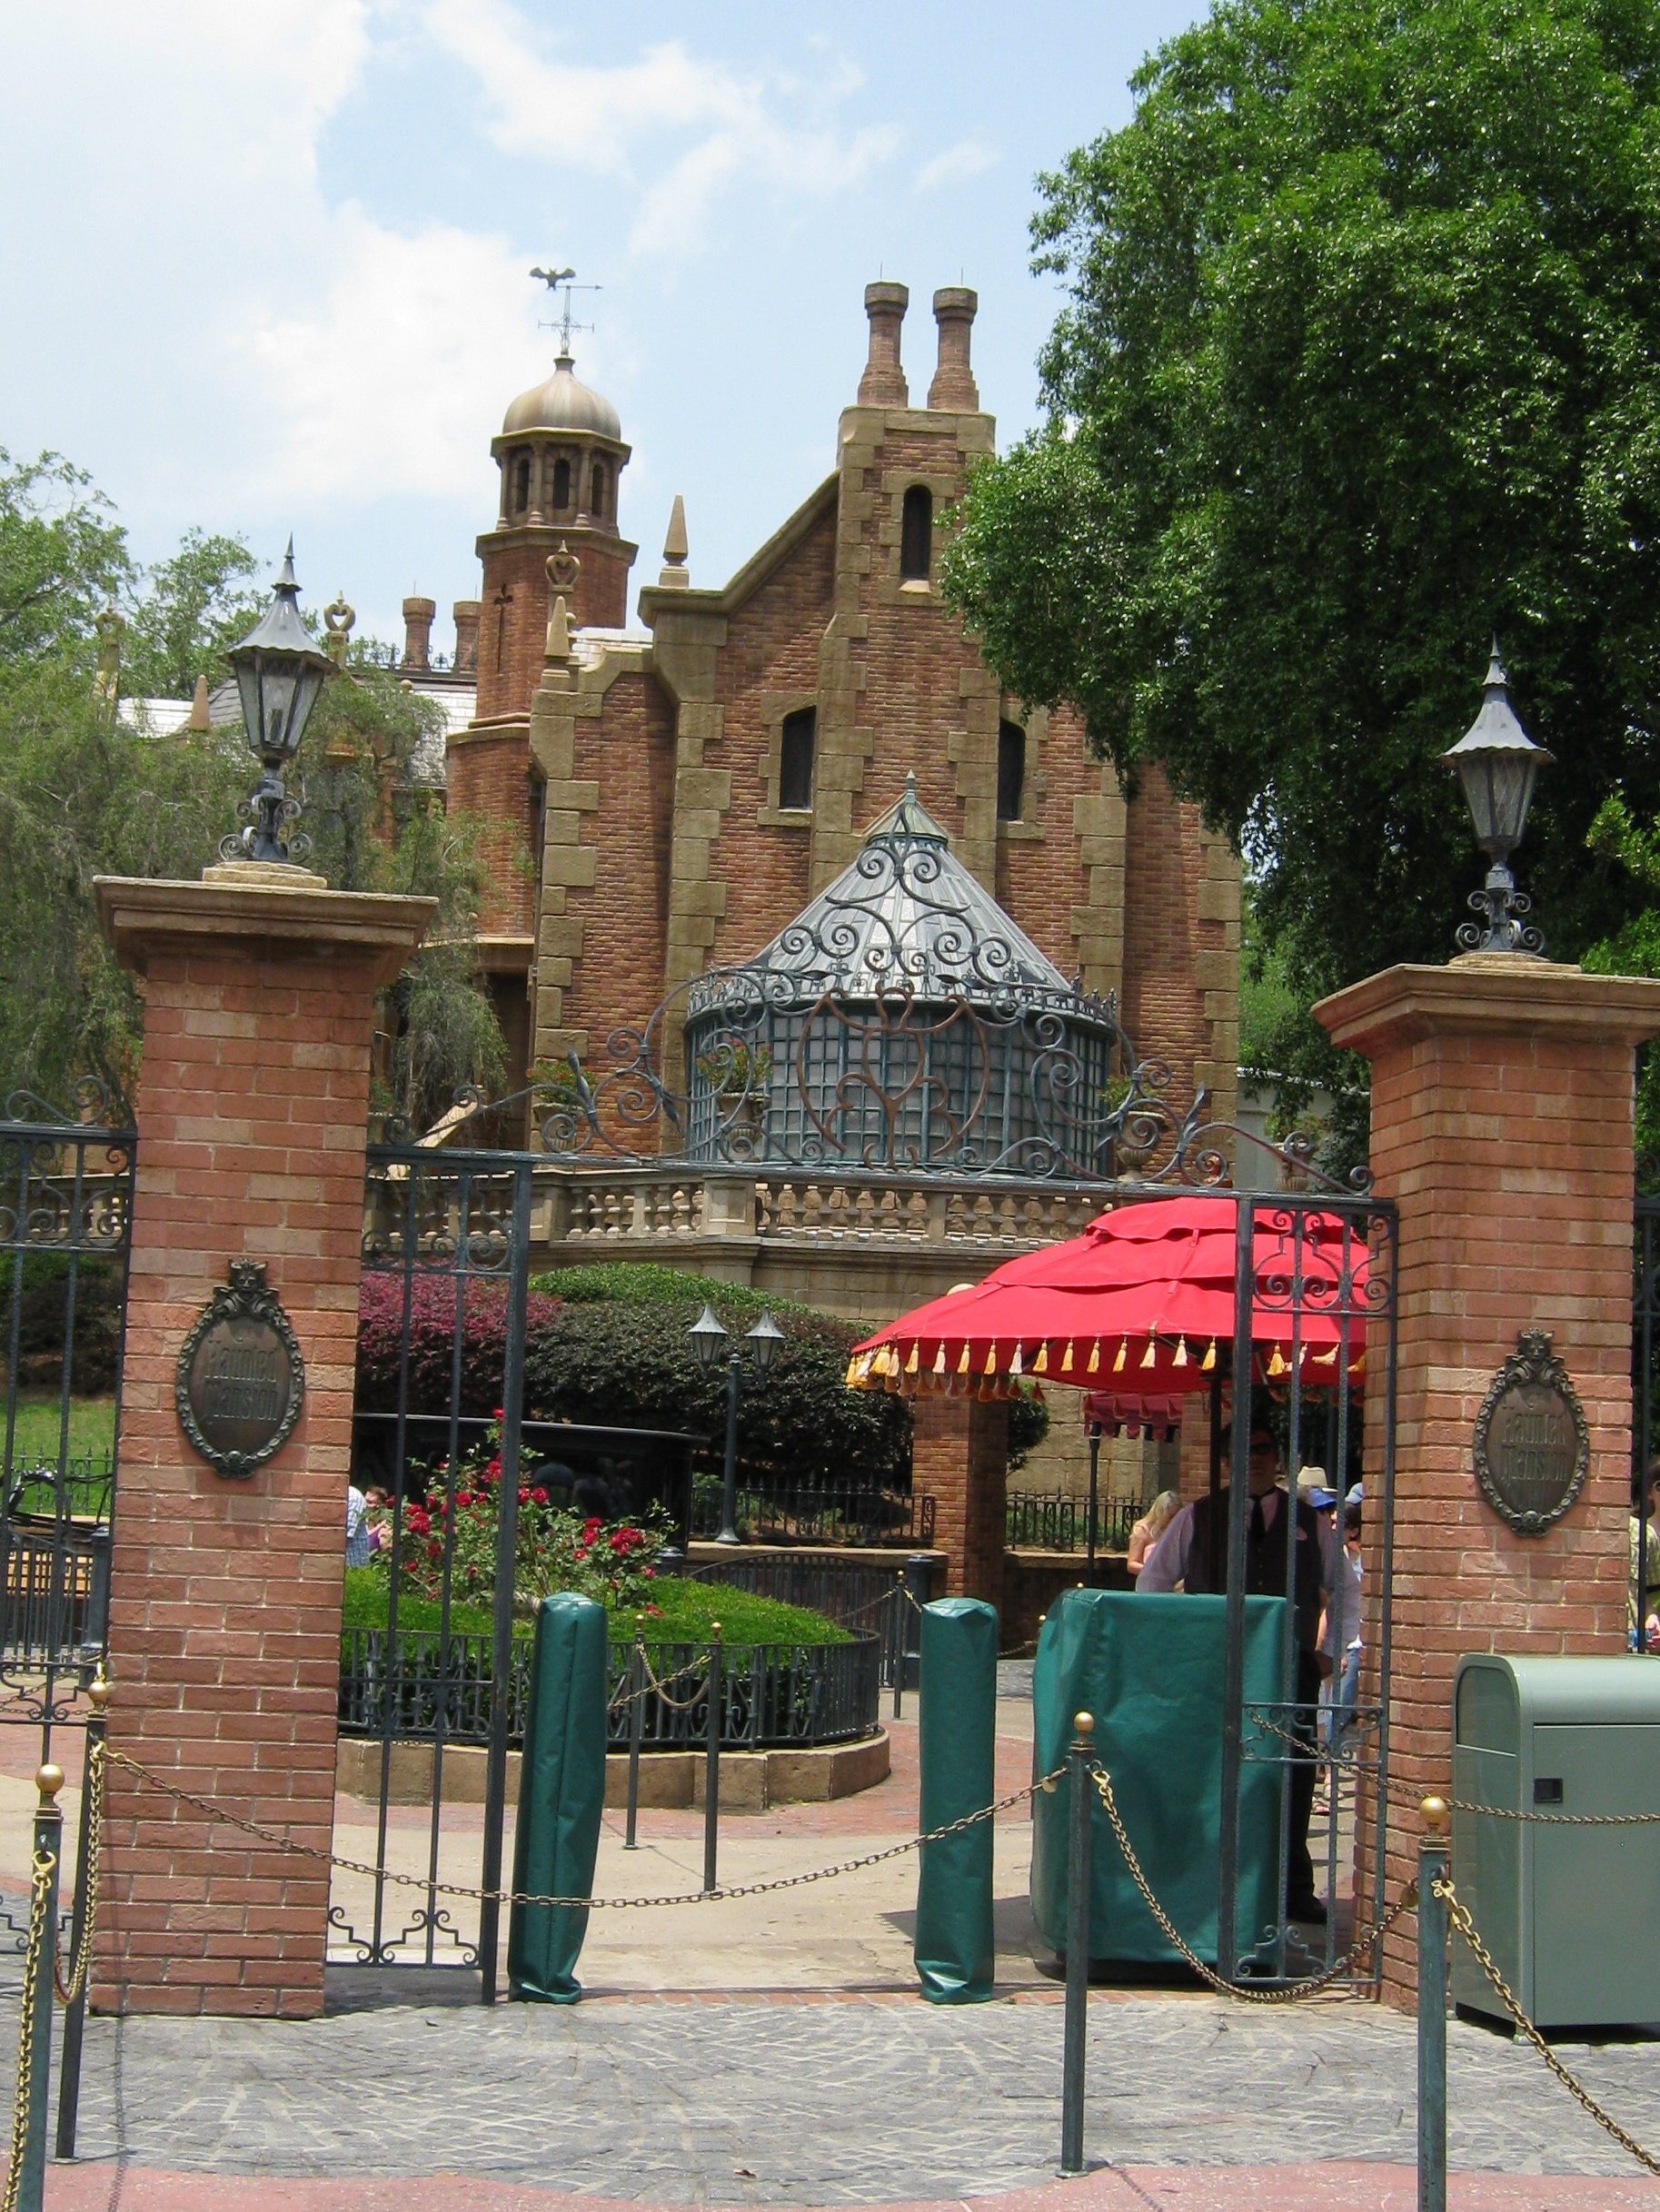 Disney's Haunted Mansion, An Eternal Classic